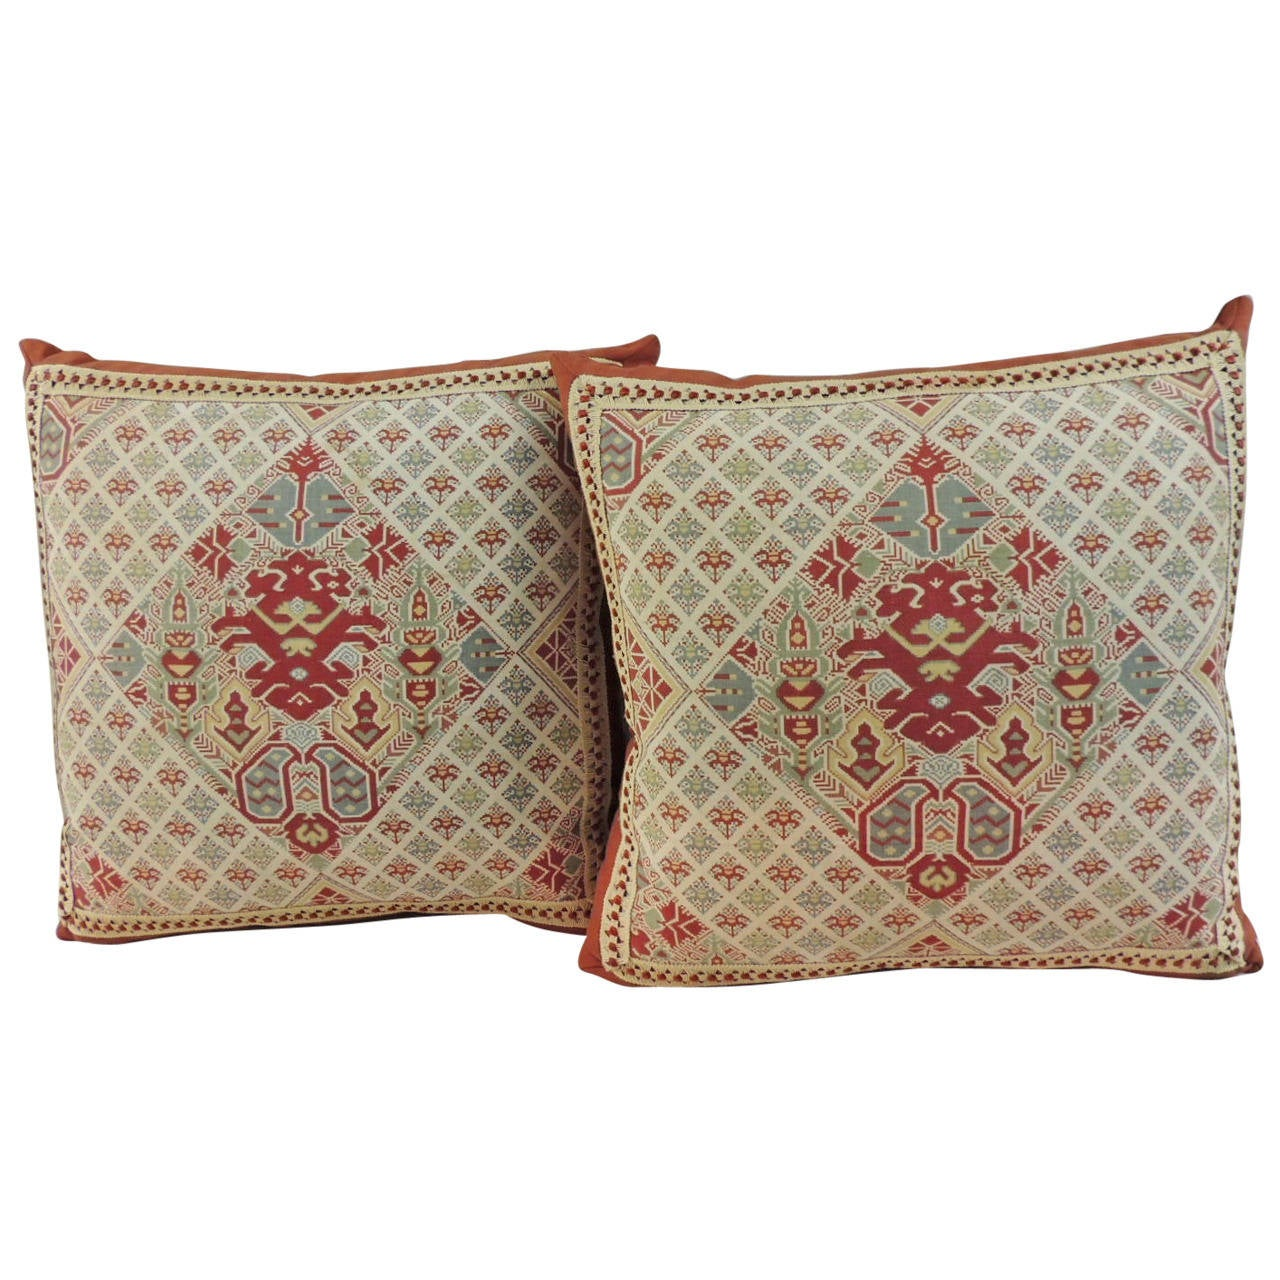 Vintage Decorative Pillow : Vintage Pair of Printed Kilim Bright Color Pattern Decorative Pillows at 1stdibs